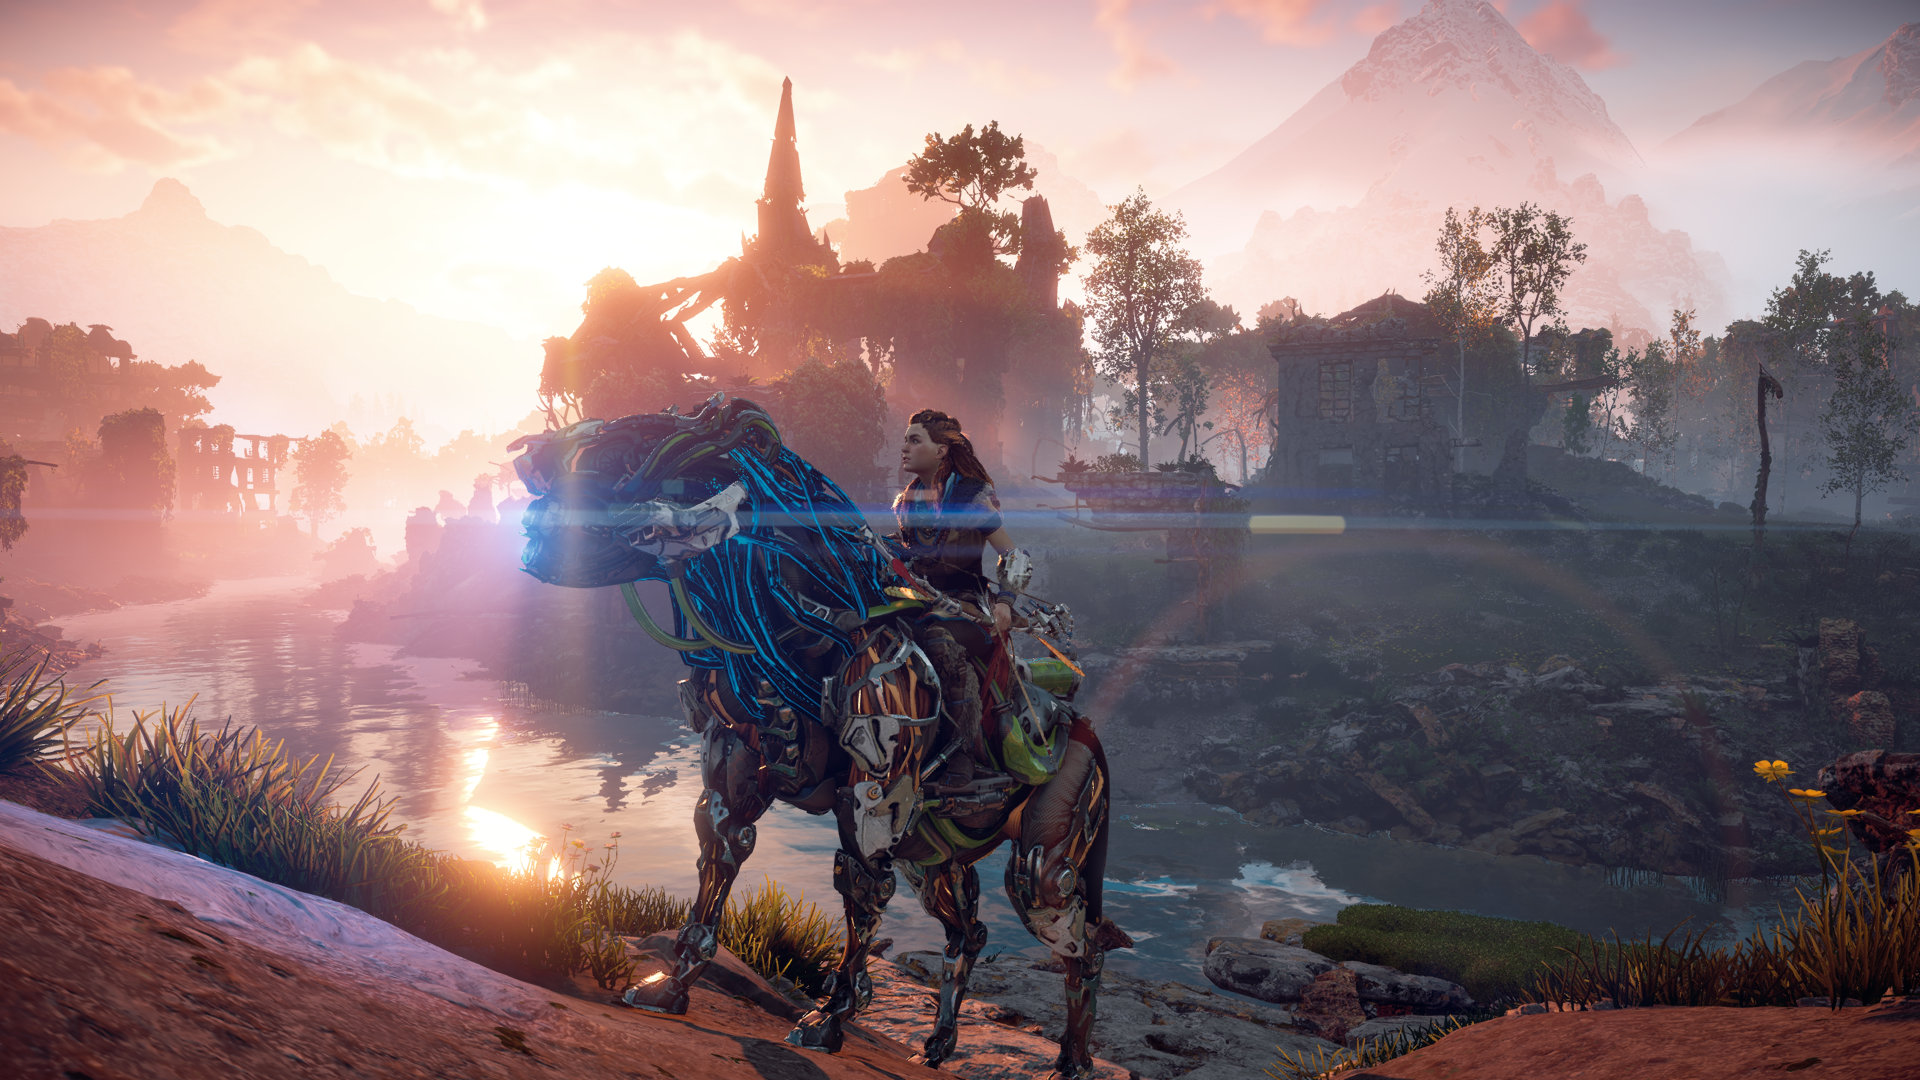 Screen shot from the game Horizon Zero Dawn, showing the hero, Aloy, mounted on a mechanical steed overlooking ruins and a river at sunrise.